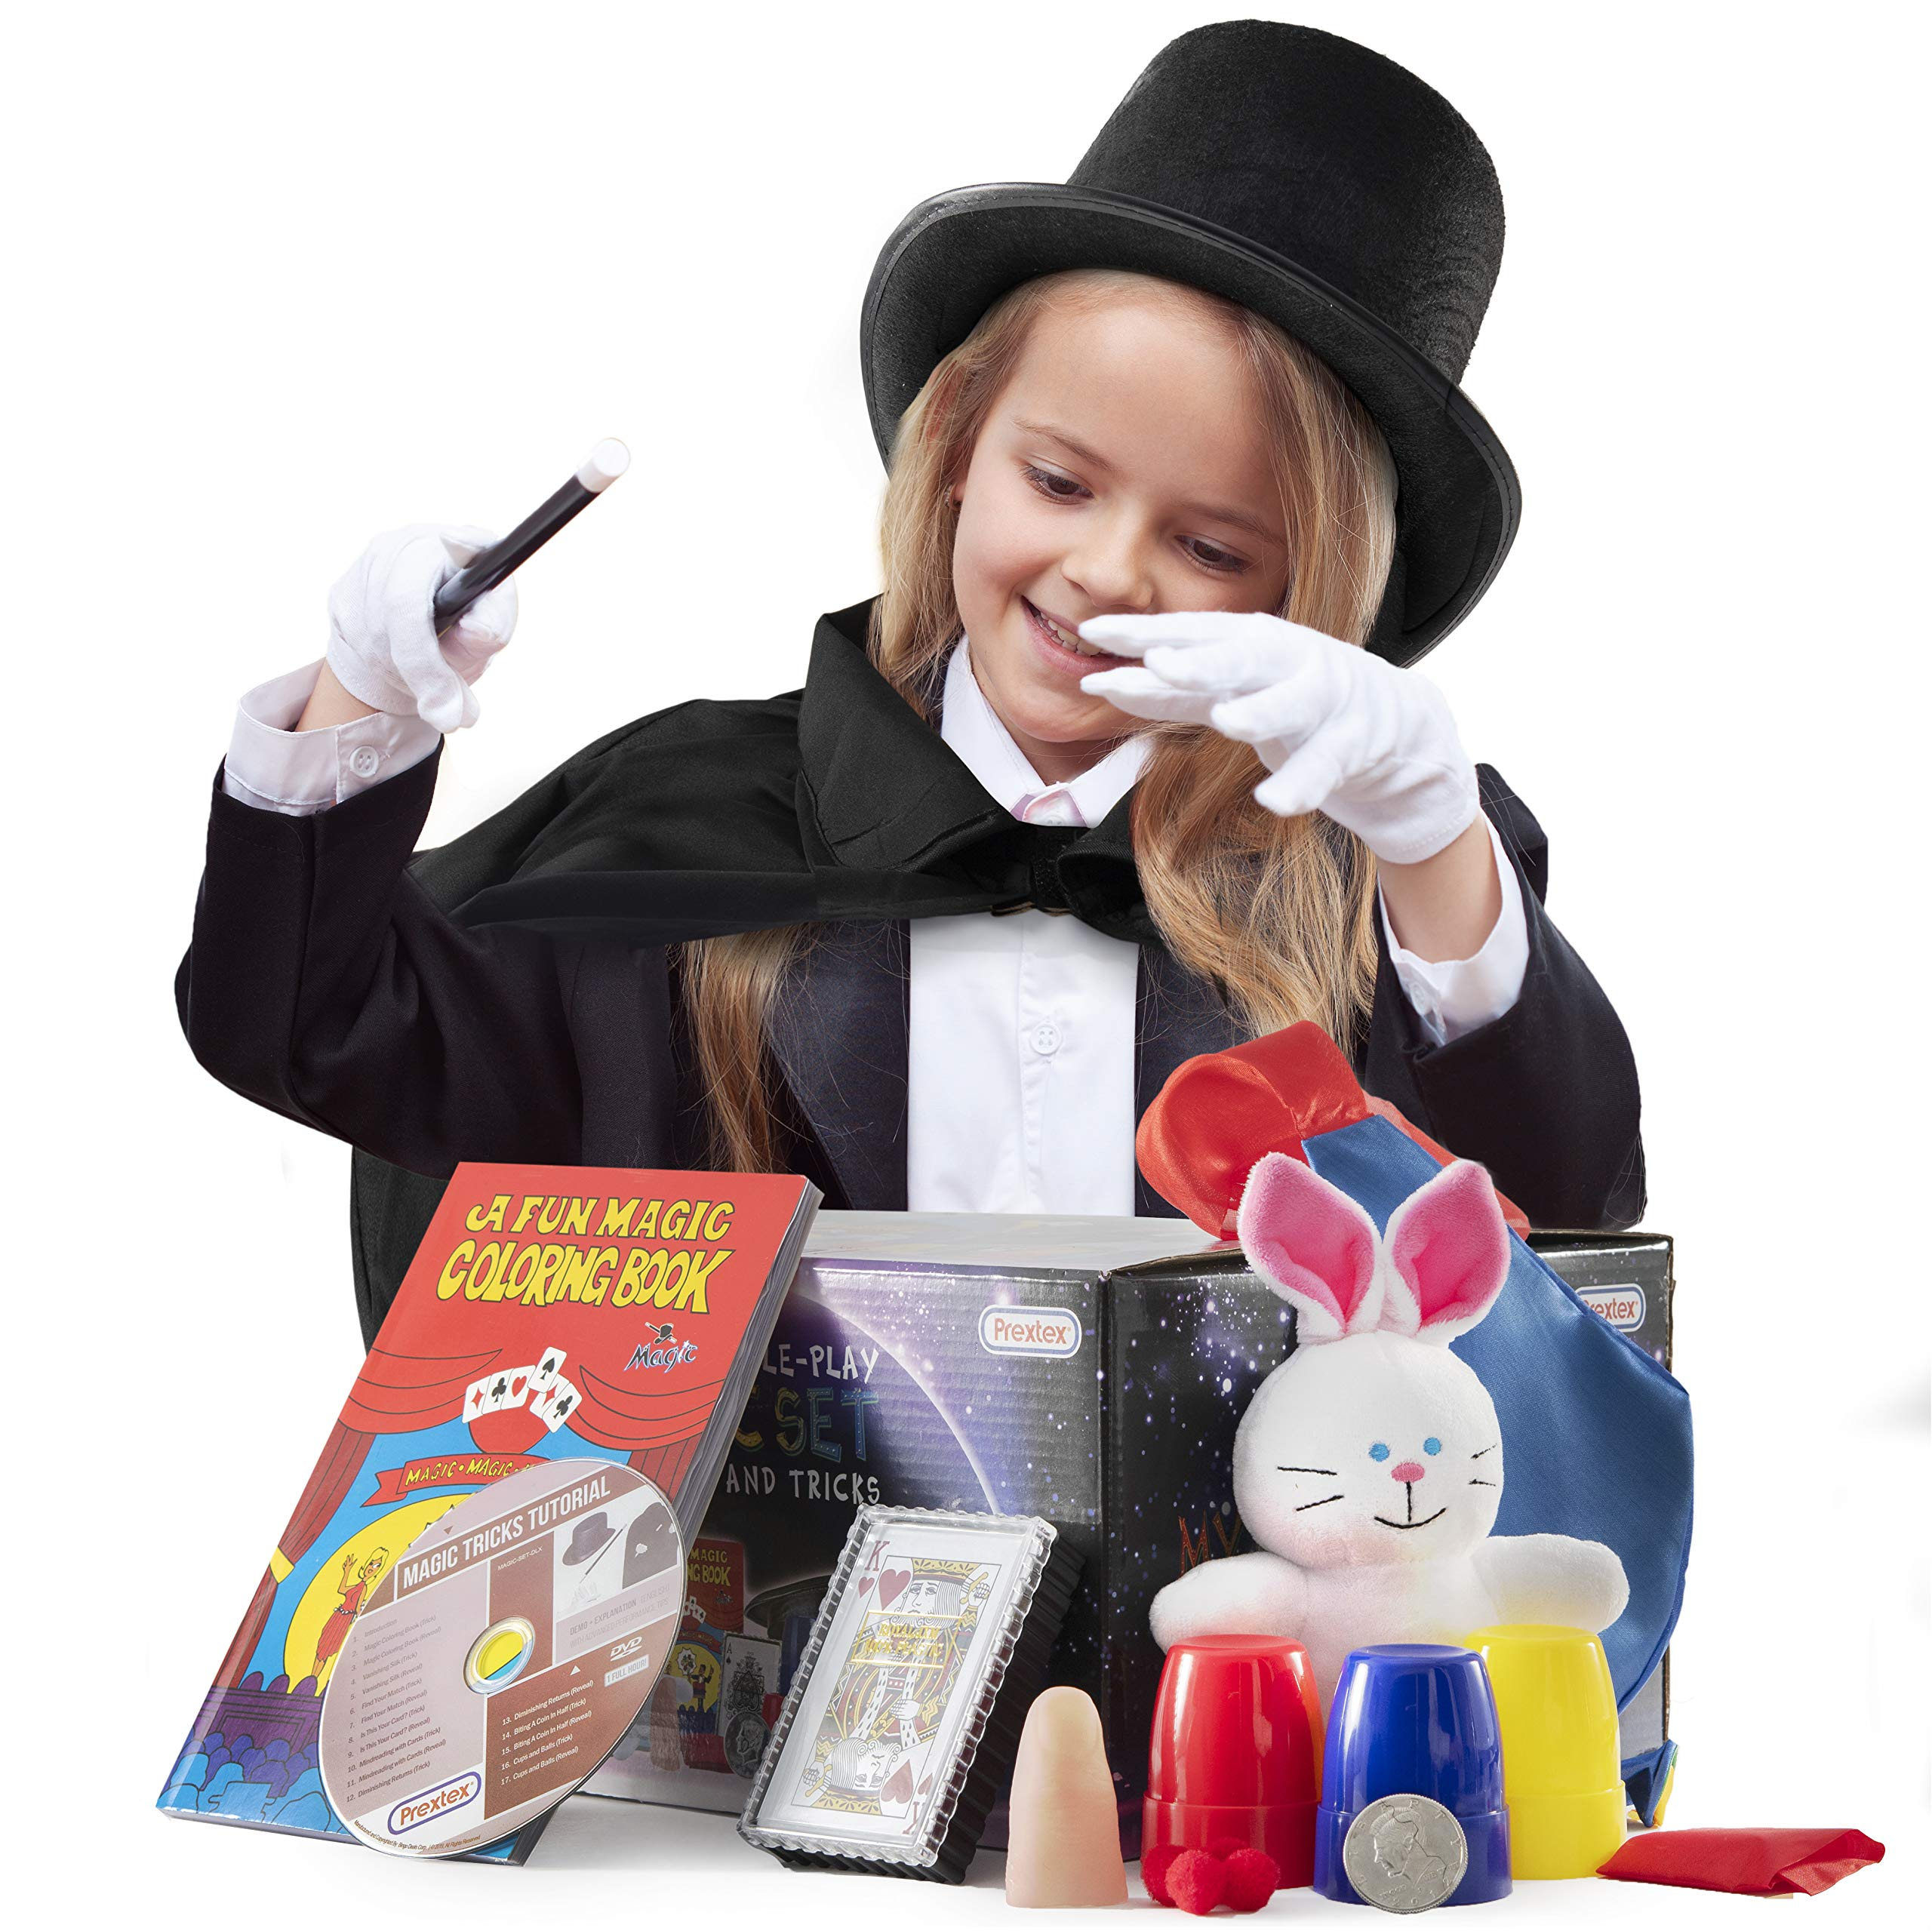 Prextex Kiddie Magician Role Play Costume and Tricks Set for Kids - Pretend Play Dress Up Set with Exciting Magic Trick Props and 1 Full Hour Training Instruction DVD by Prextex